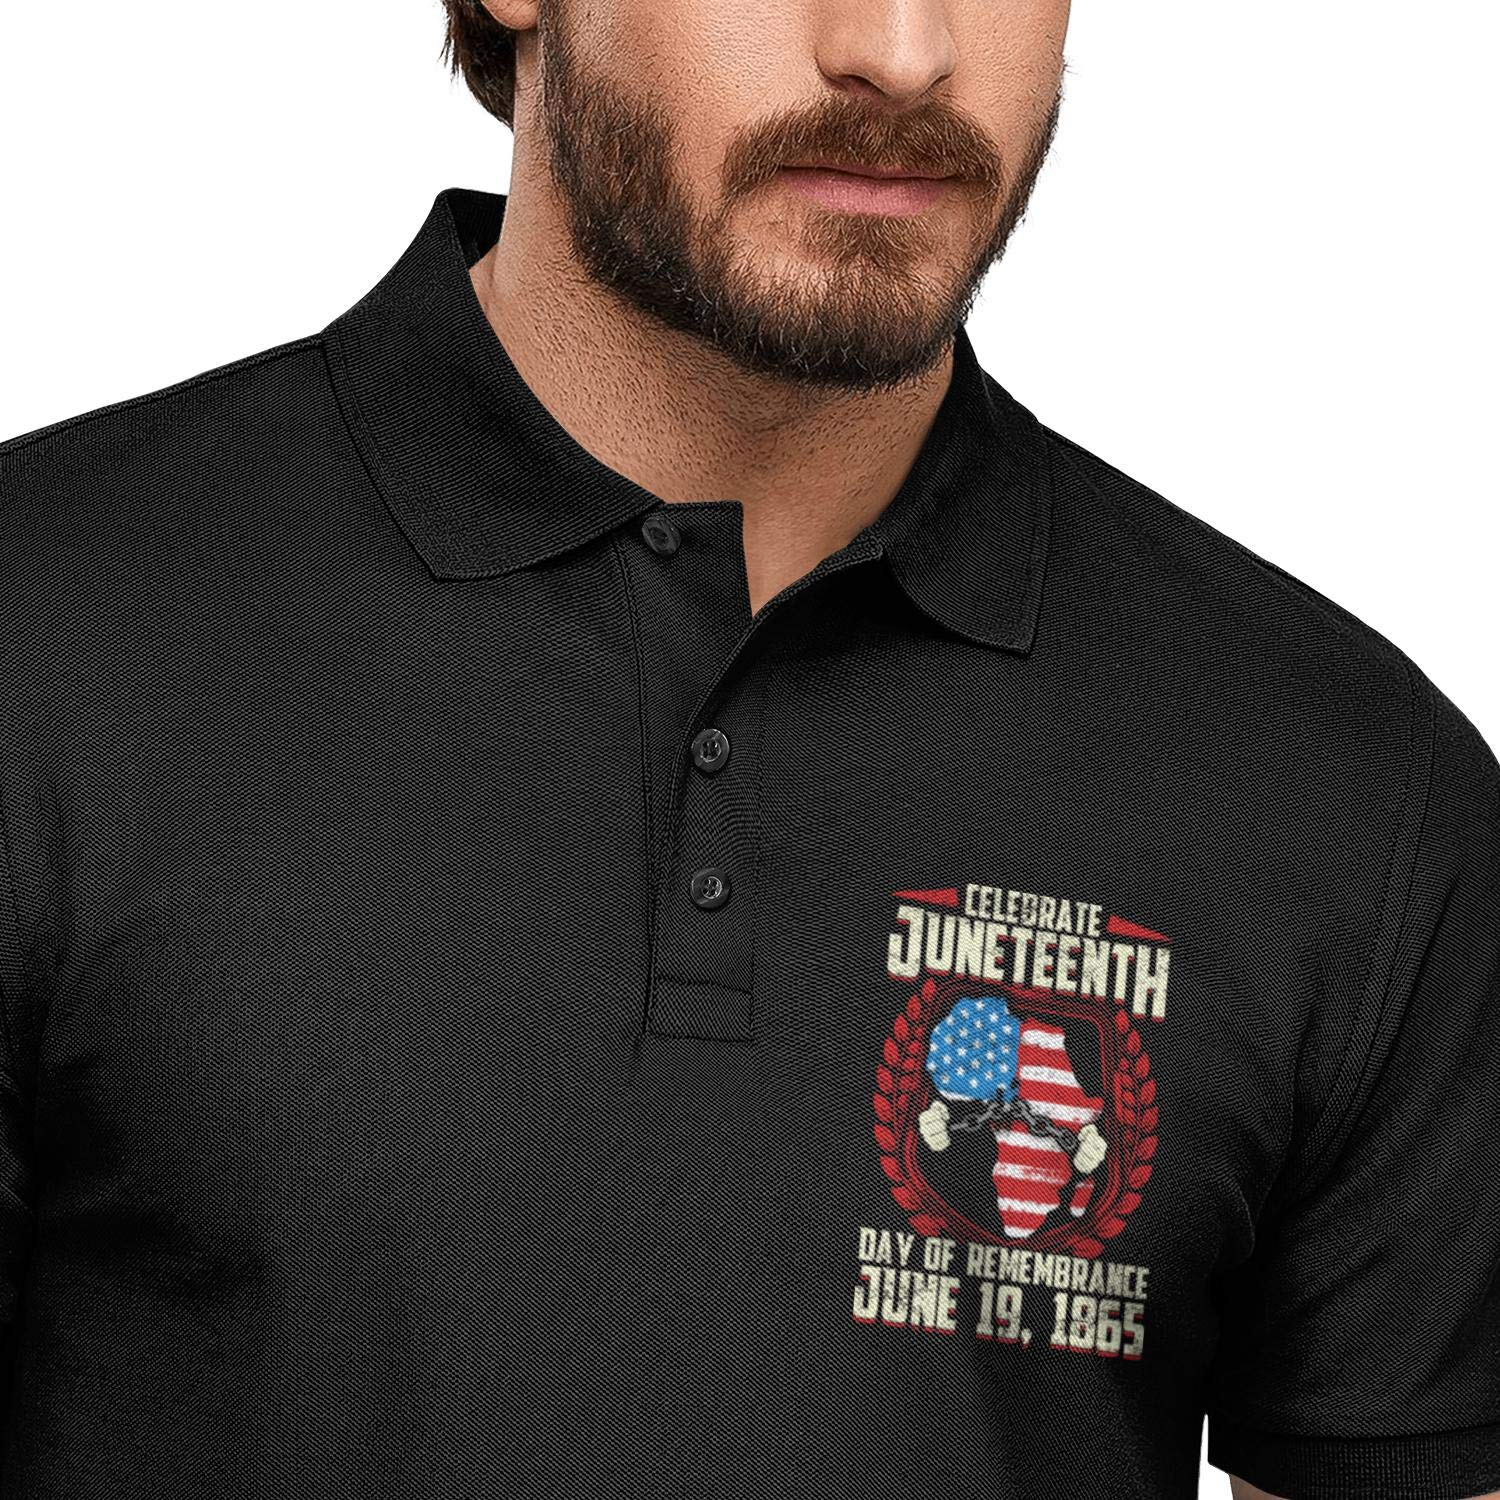 ChenBG Happy Juneteenth Day American Flag Chain Polo Shirts for Men Regular-Fit Cotton Short Sleeve Polo Mens Polo